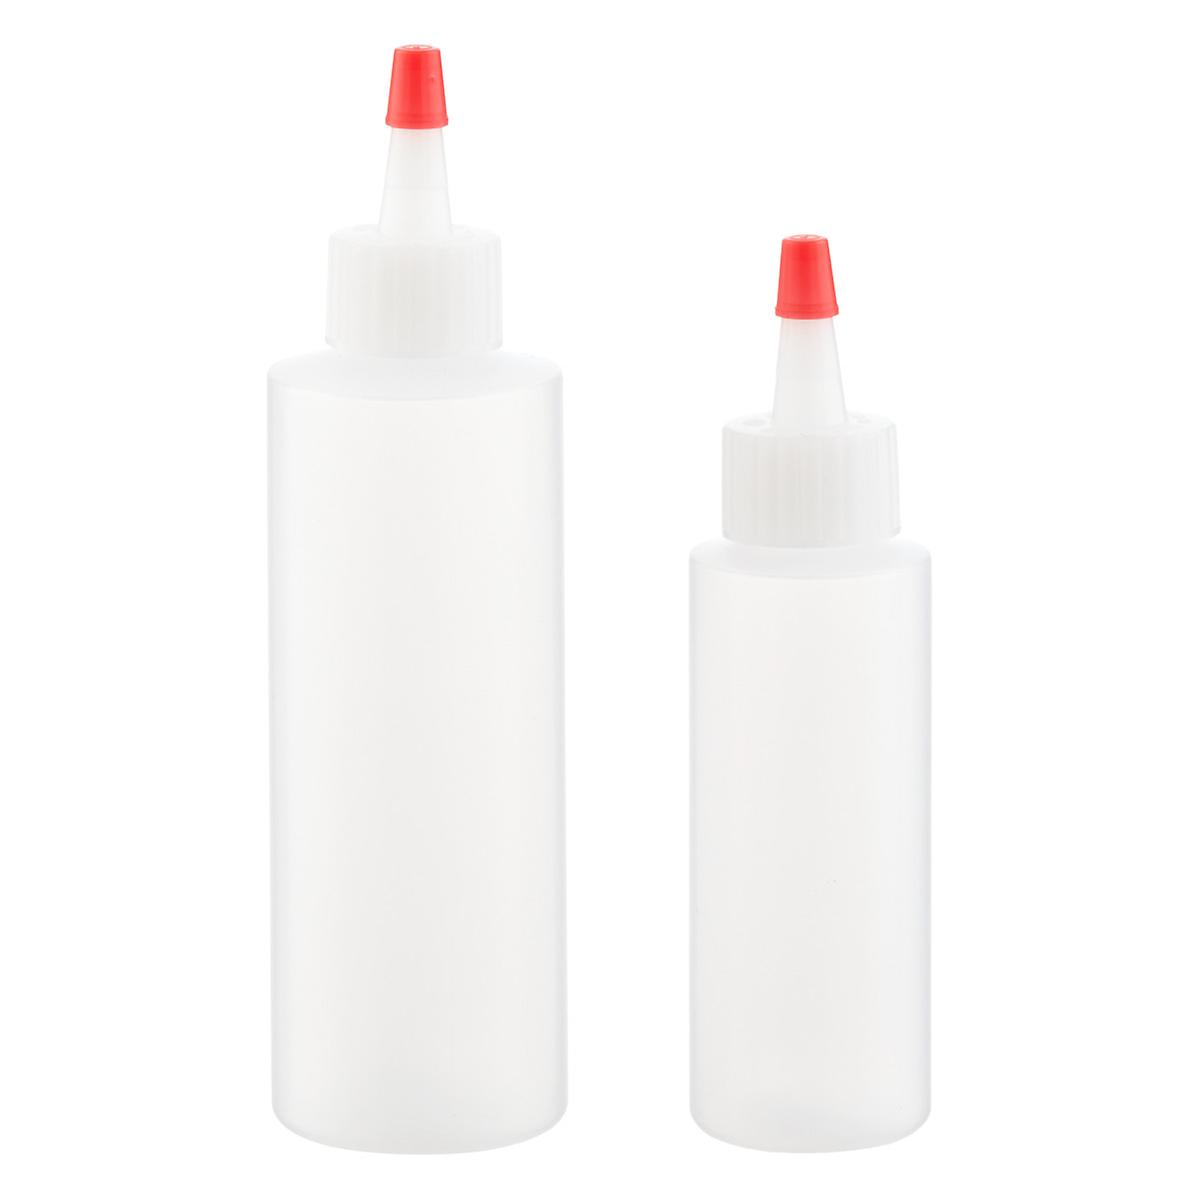 2 oz. & 4 oz. Condiment Bottles